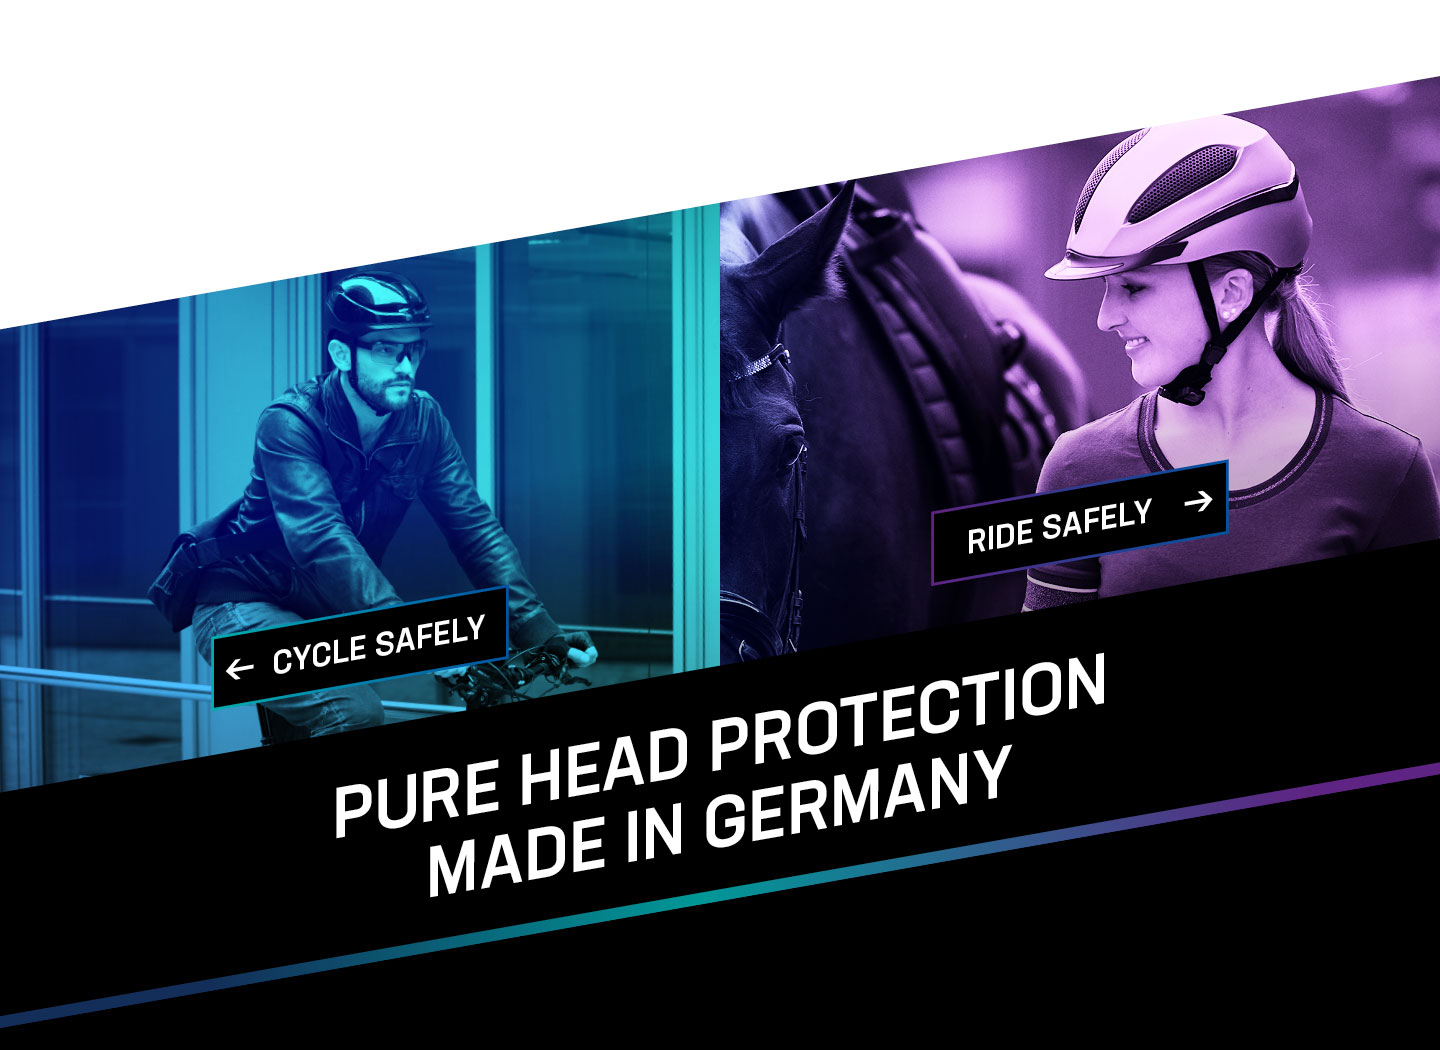 Pure Headprotection Made In Germany